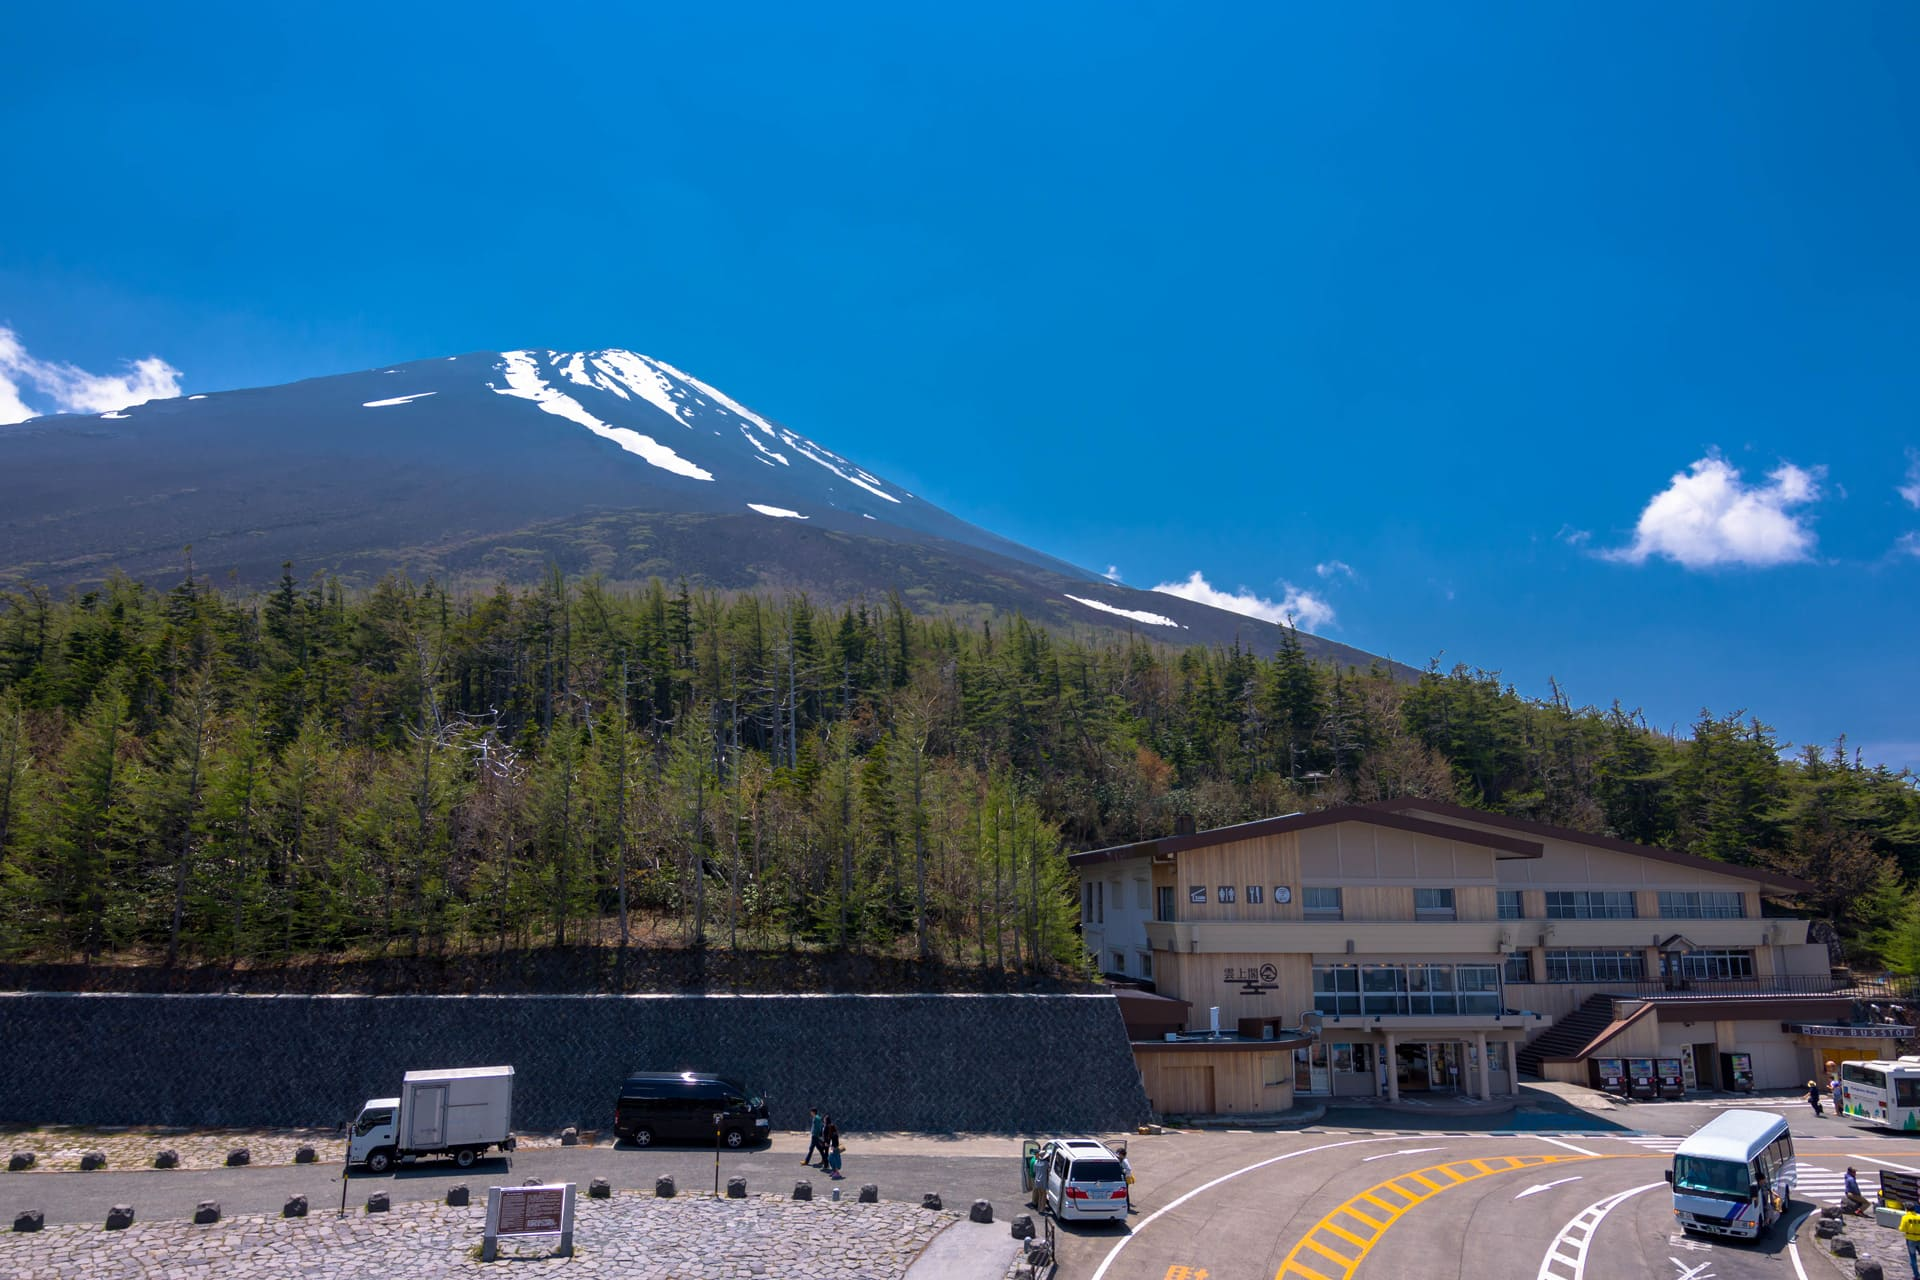 Mount Fuji Subaru Line 5th station Japan